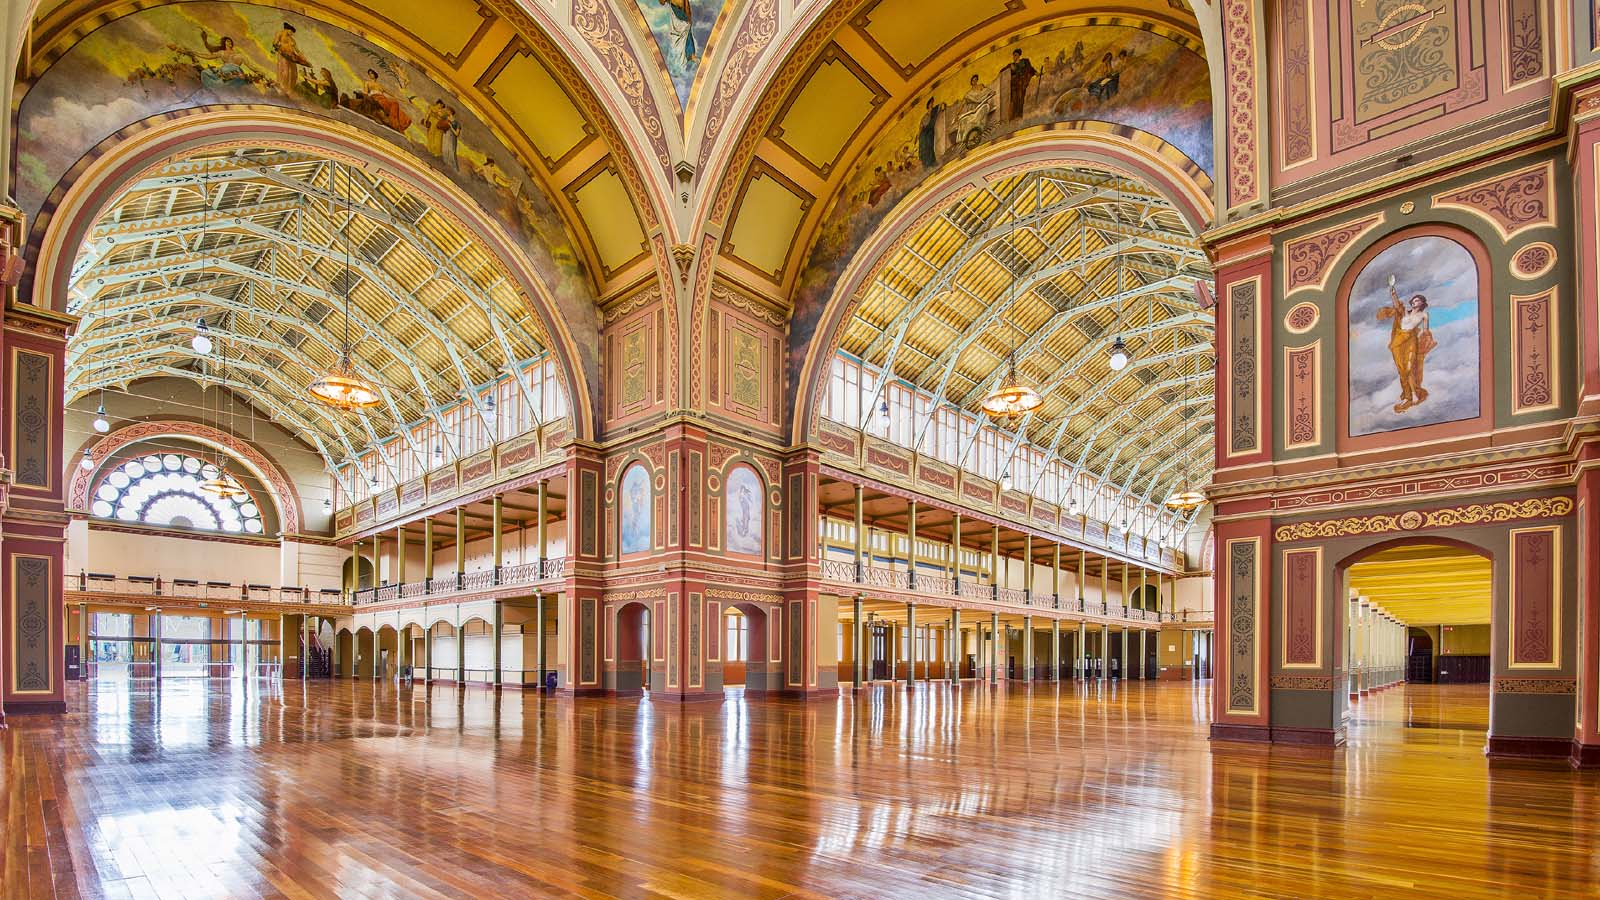 Royal Exhibition Building, Carlton, Victoria, Australia